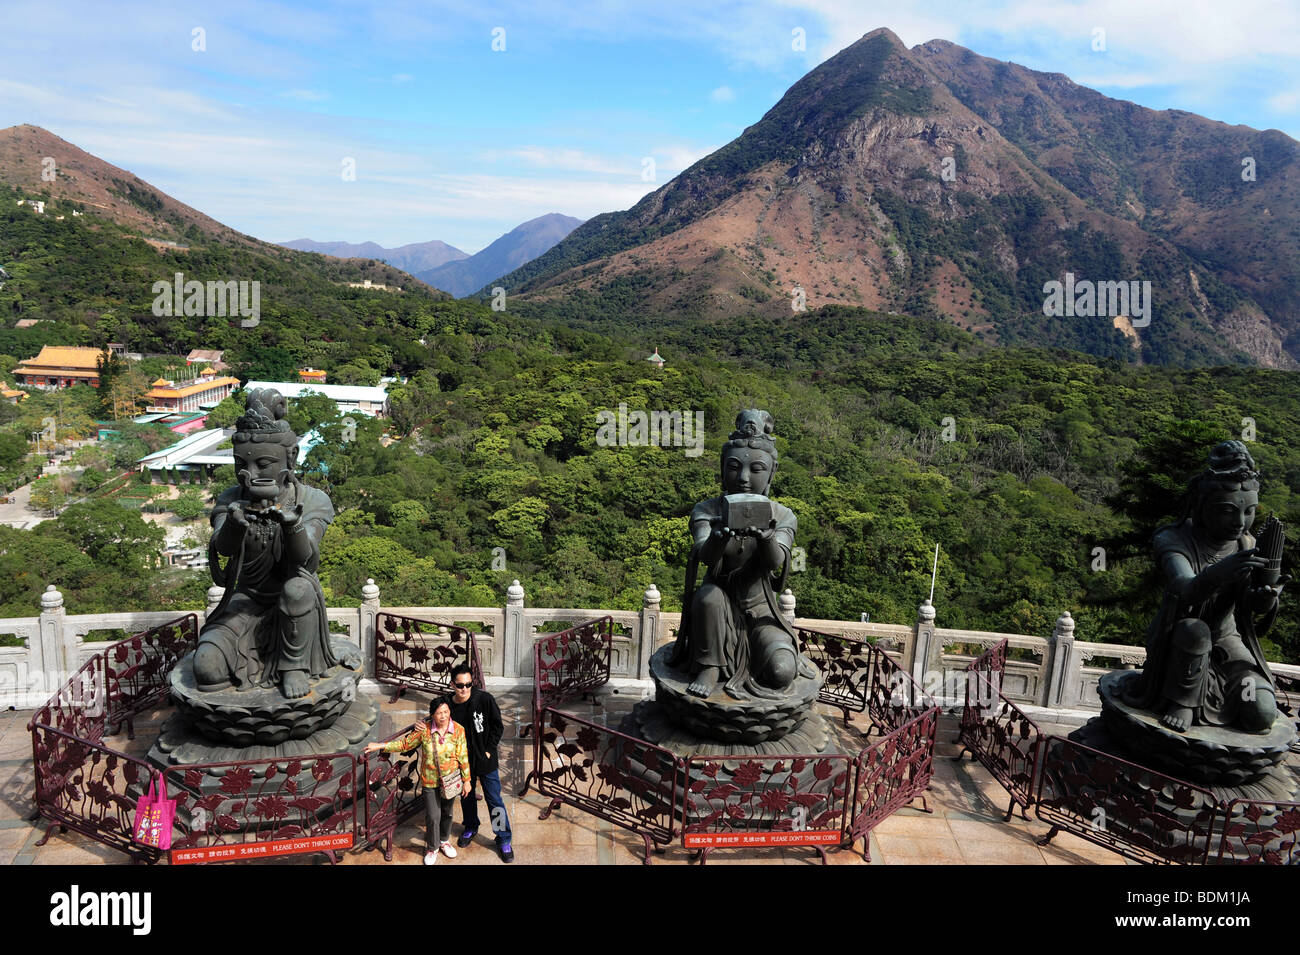 The Offering of the Six Devas: Buddhistic statues praising and making offerings to the Tian Tan Buddha. Po Lin Monastery - Stock Image